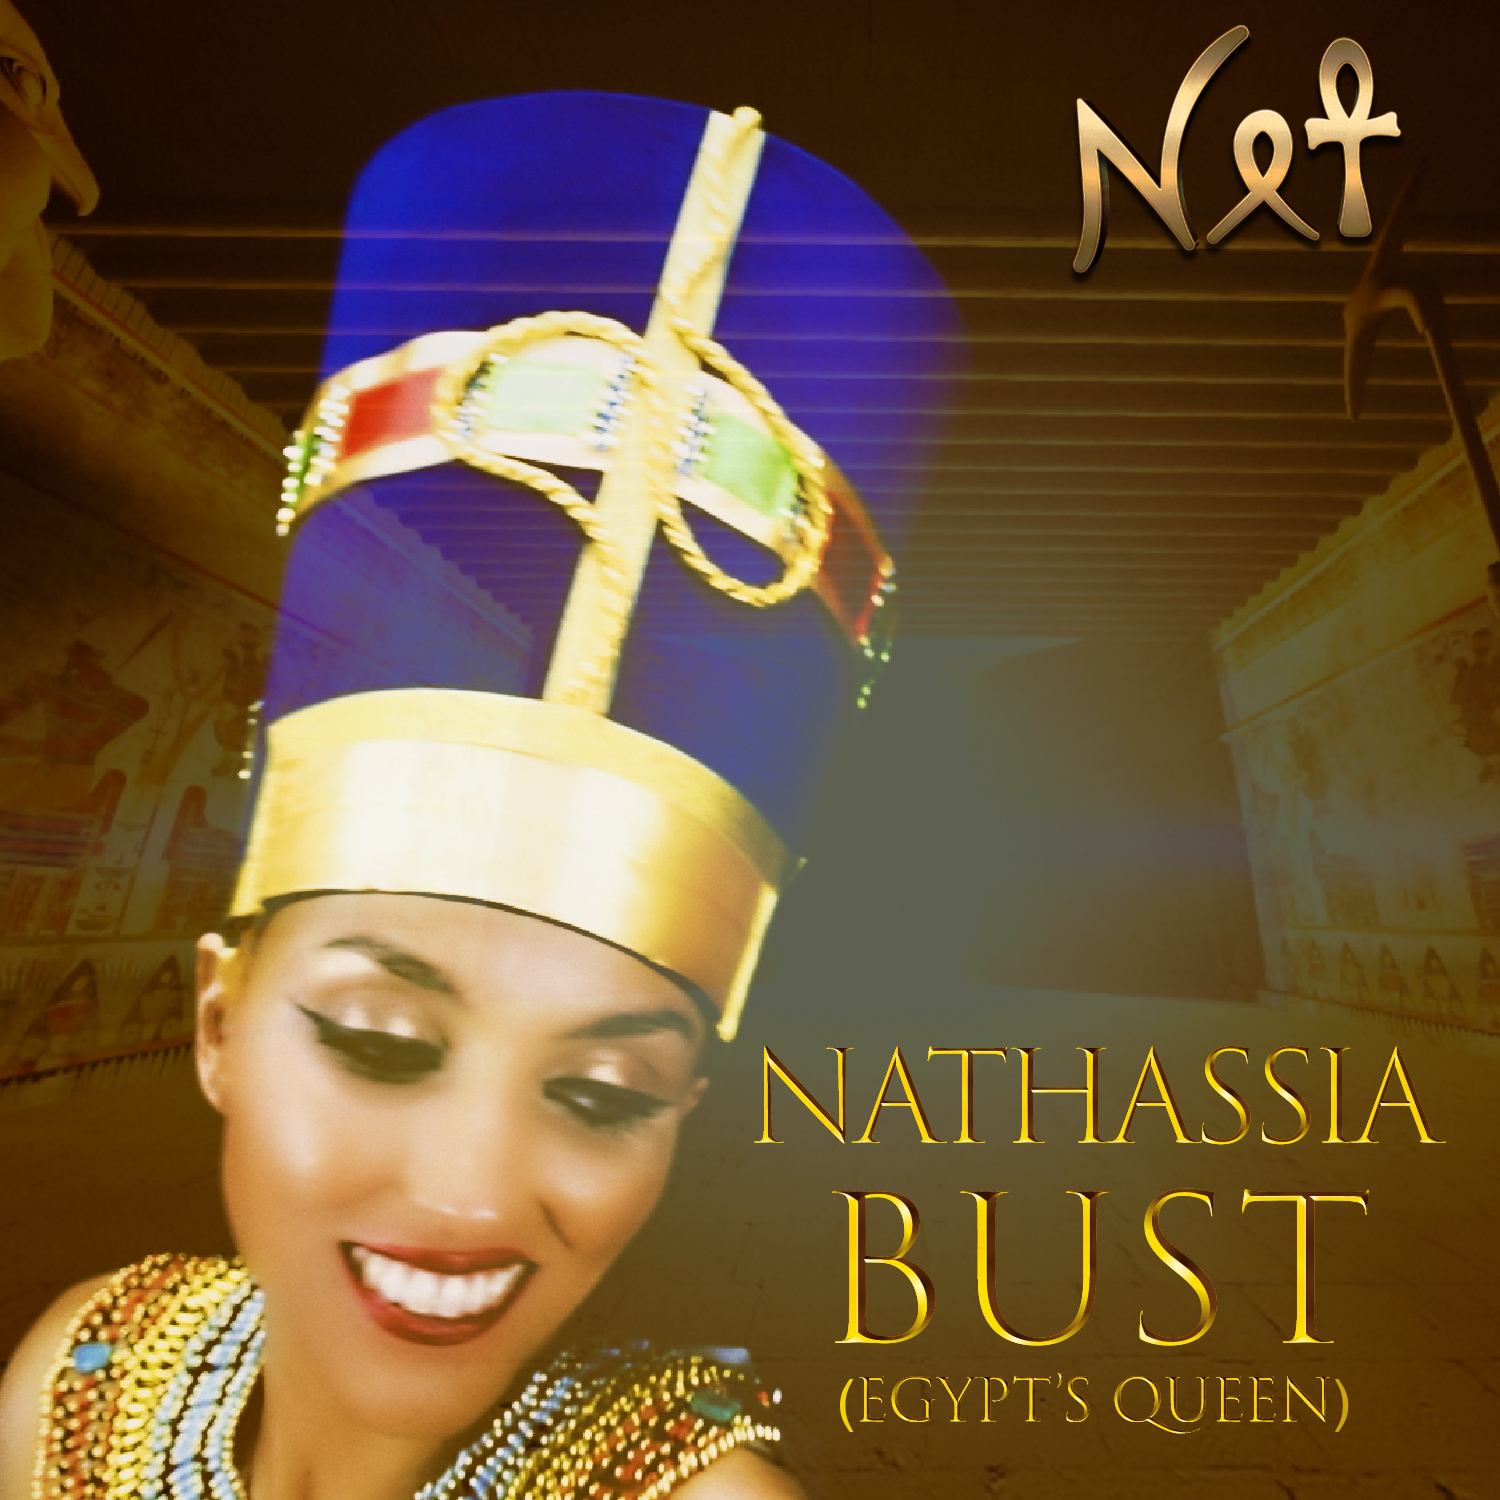 NATHASSIA_Bust (Egypt's Queen)_Digital release Artwork